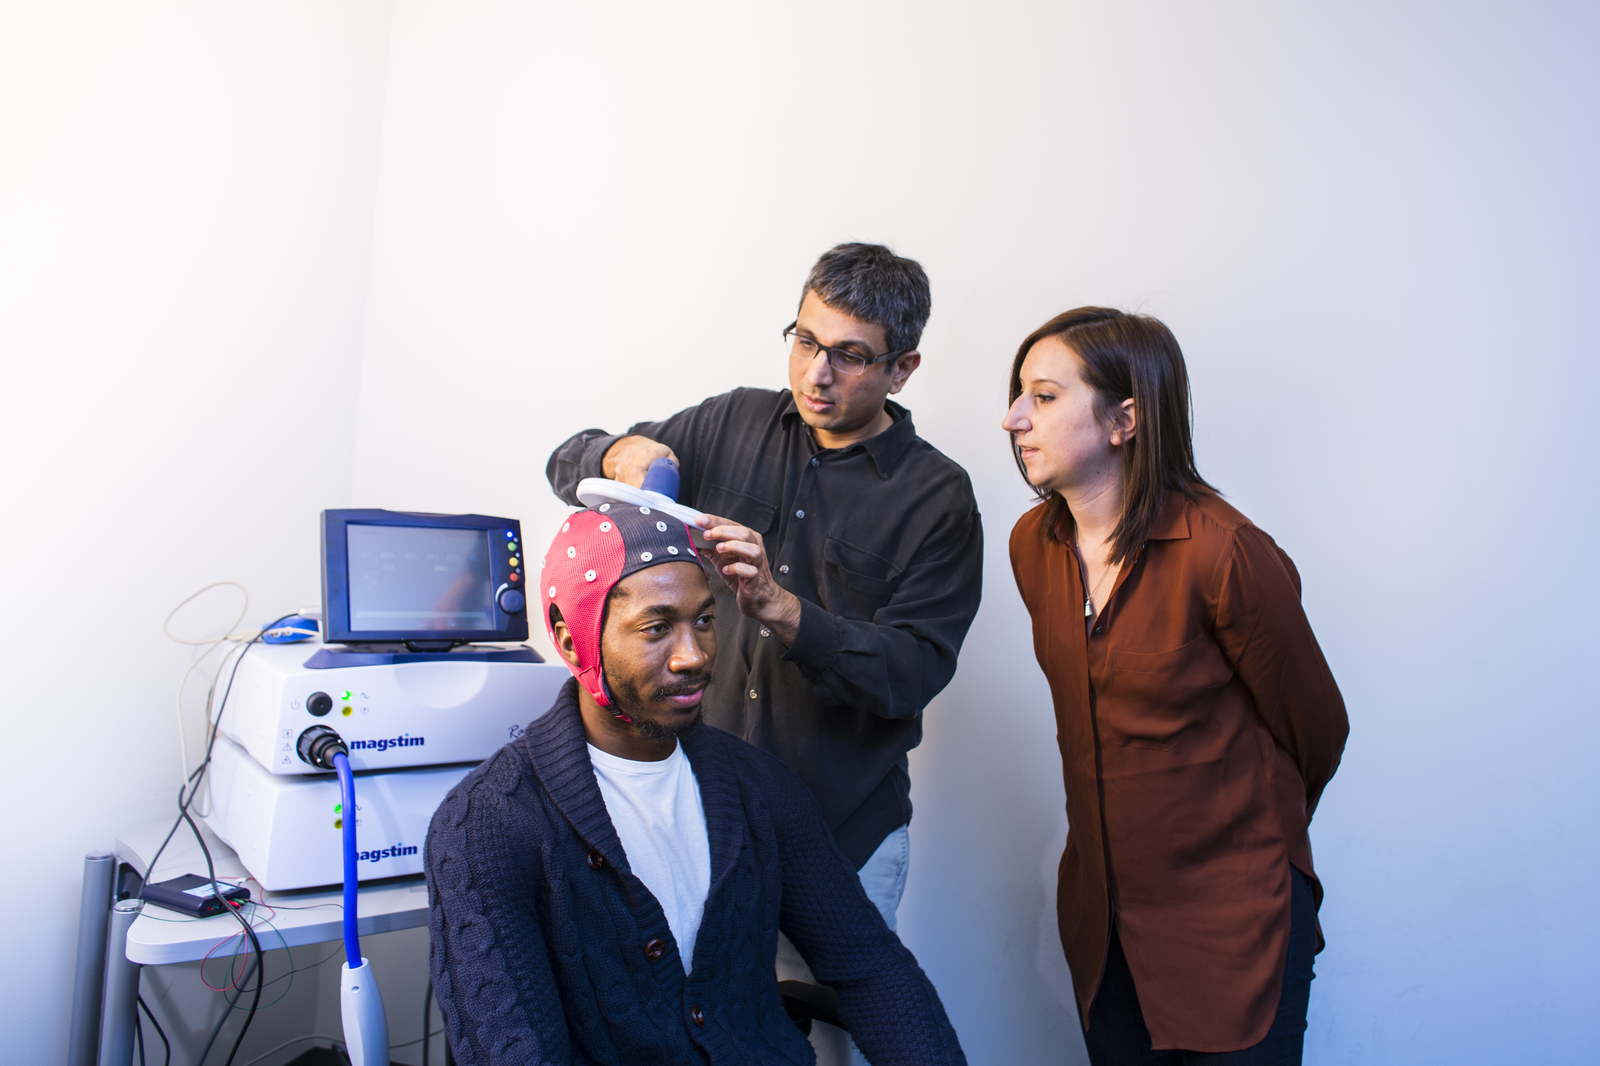 UC Merced researcher brain mapping subject